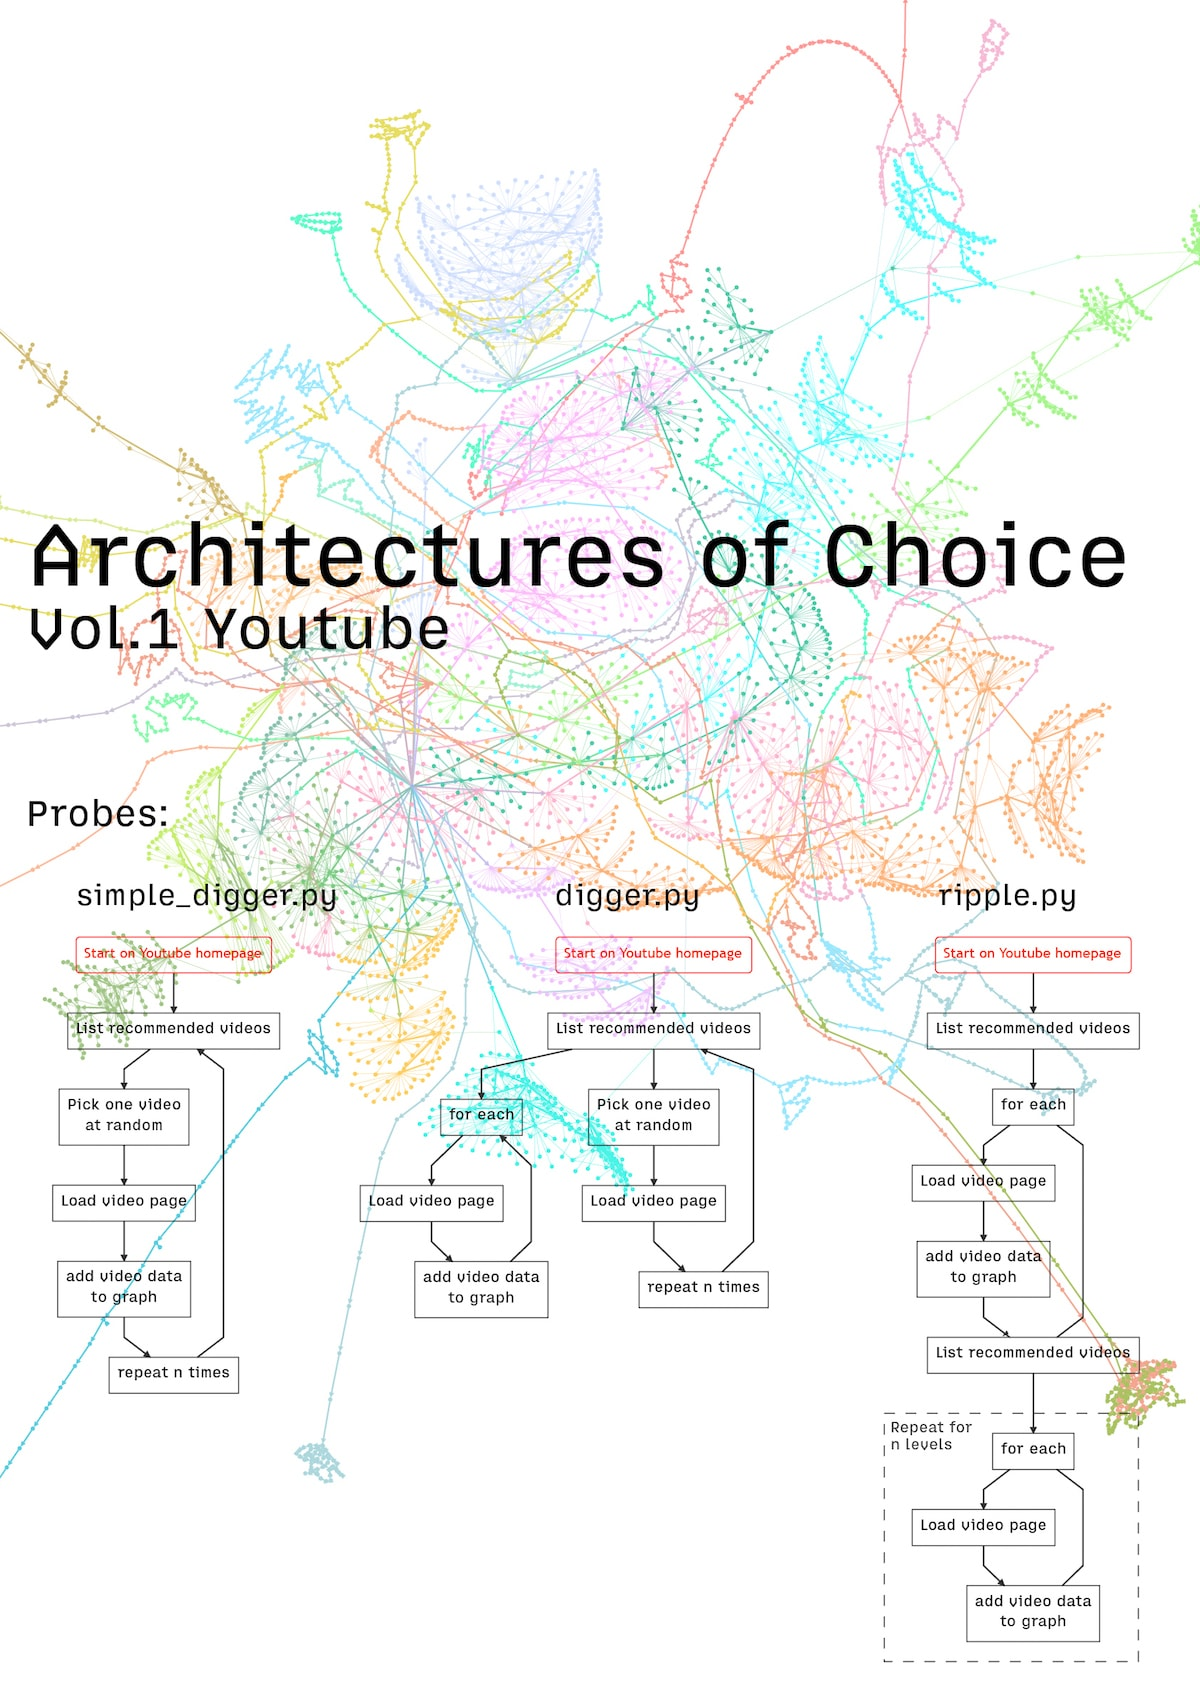 Architectures of Choice